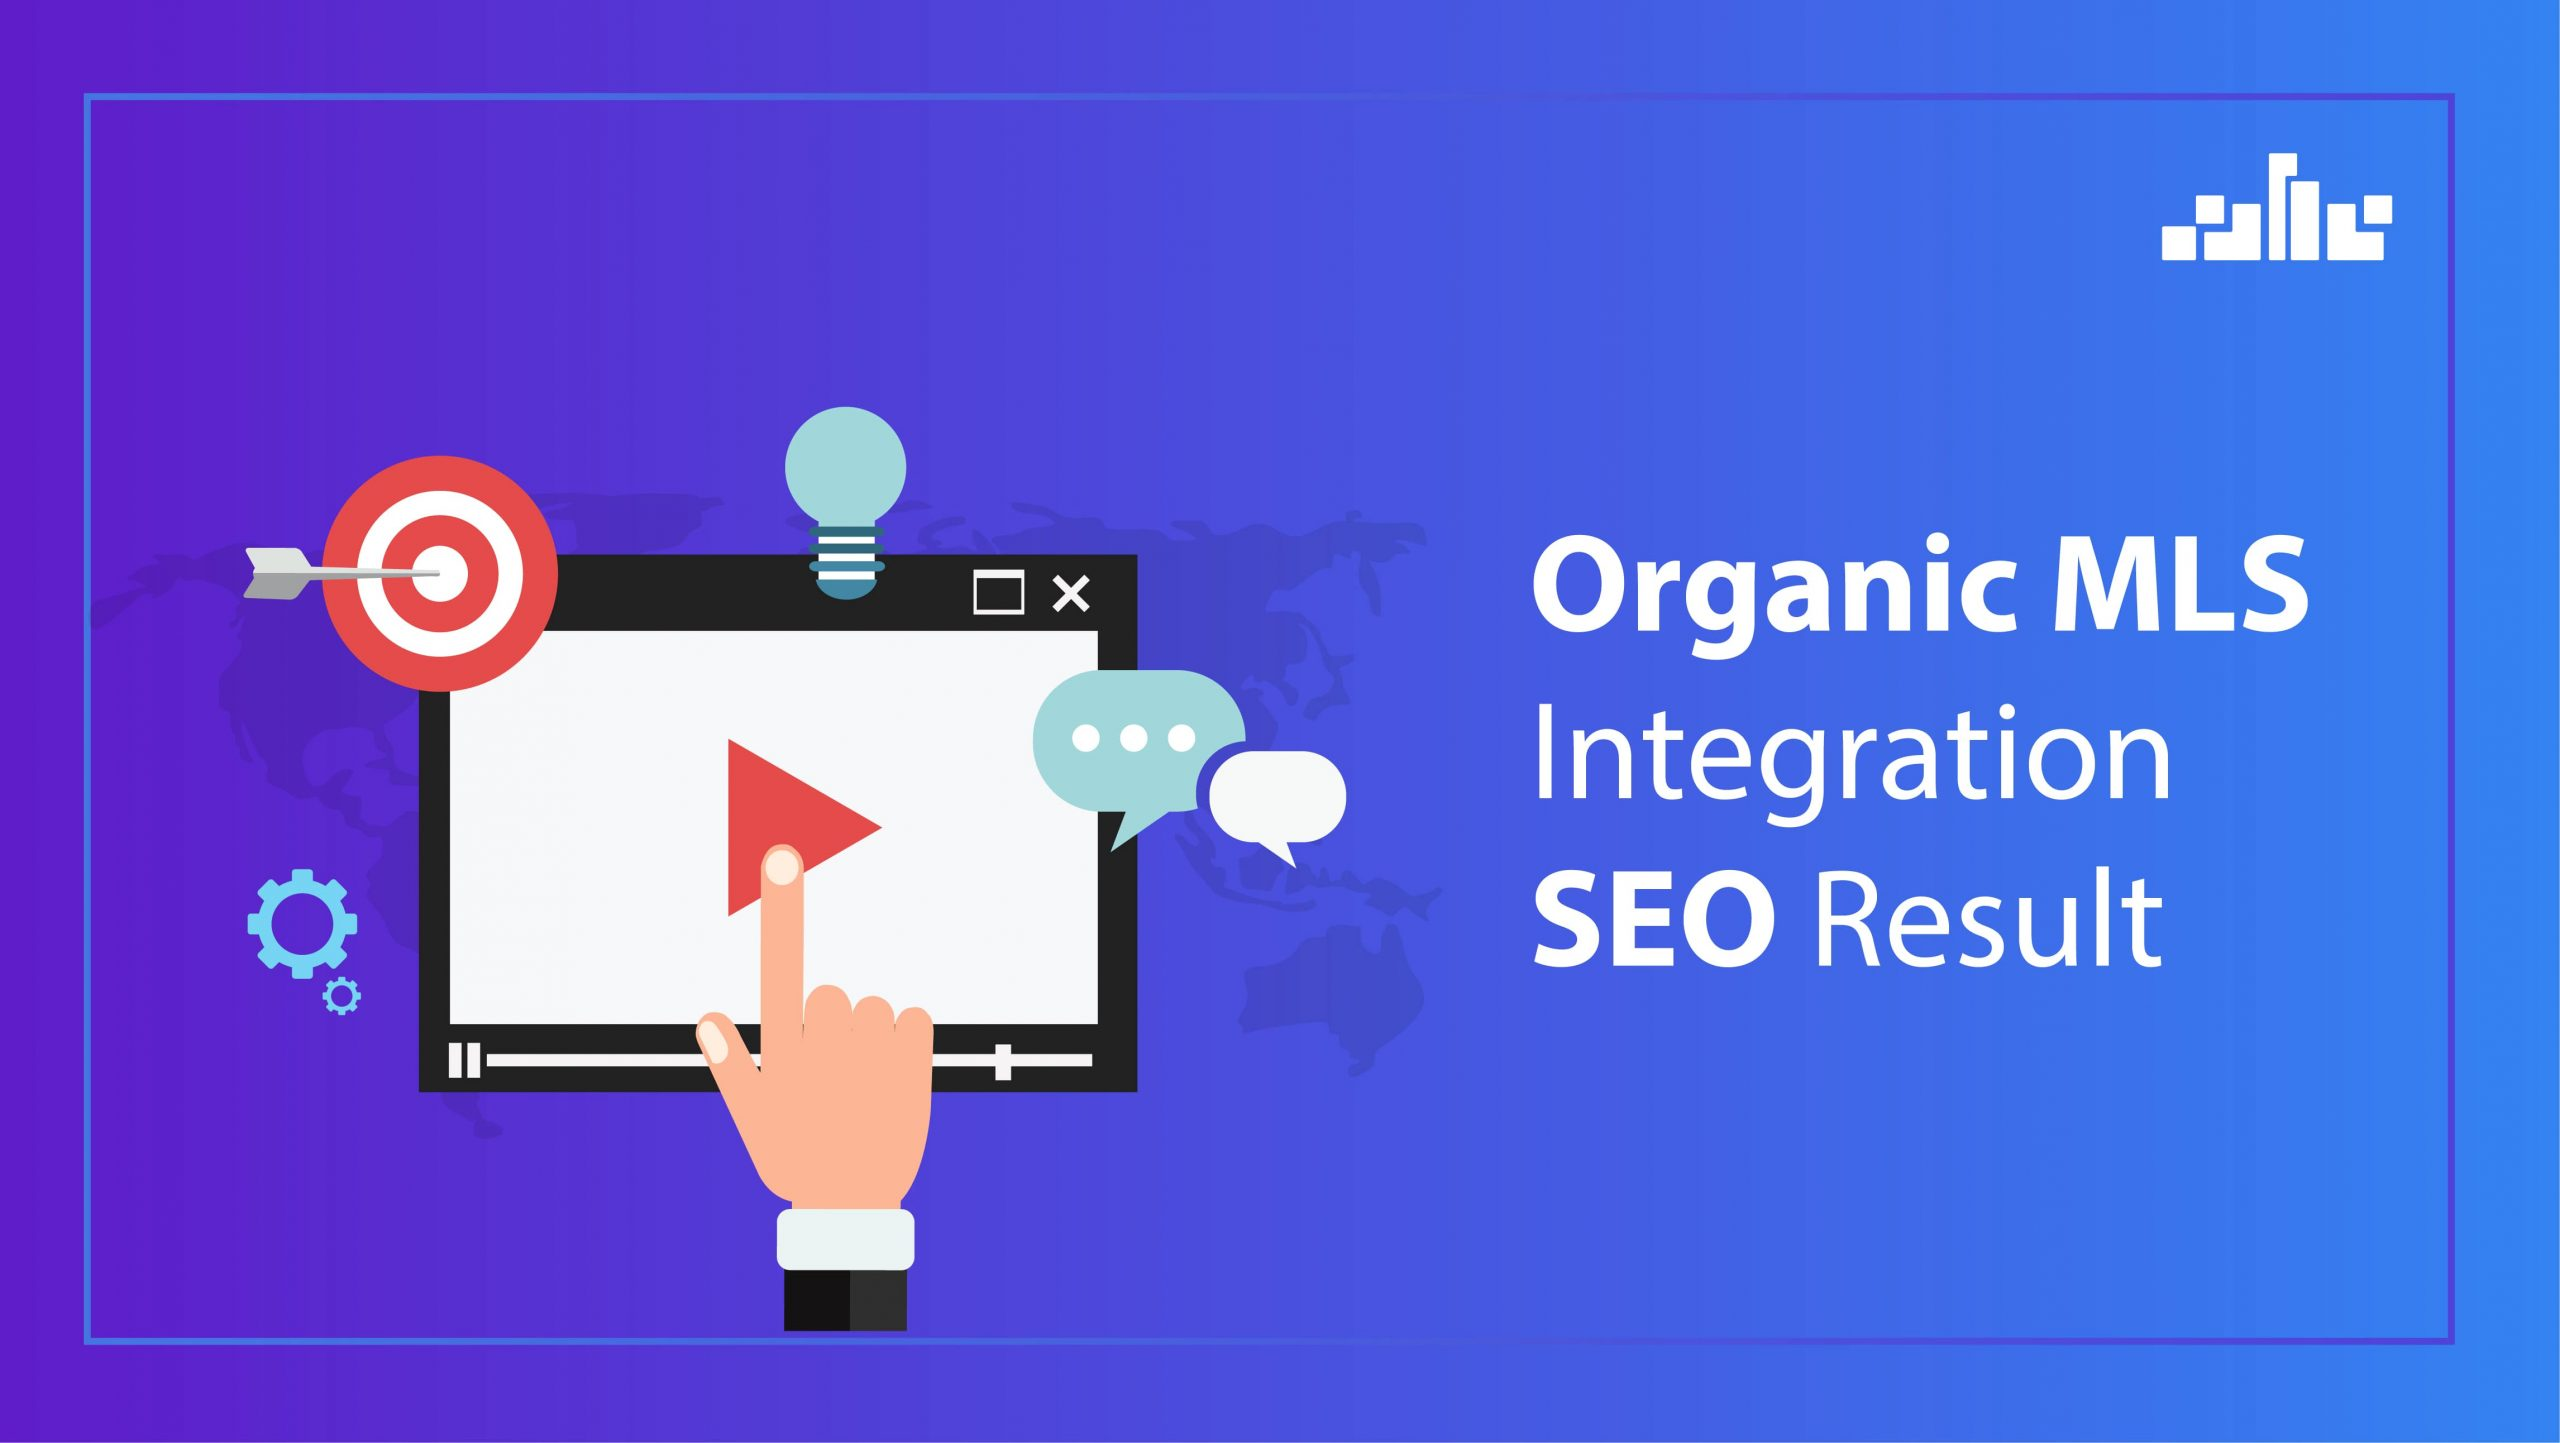 Organic MLS Integration SEO Result